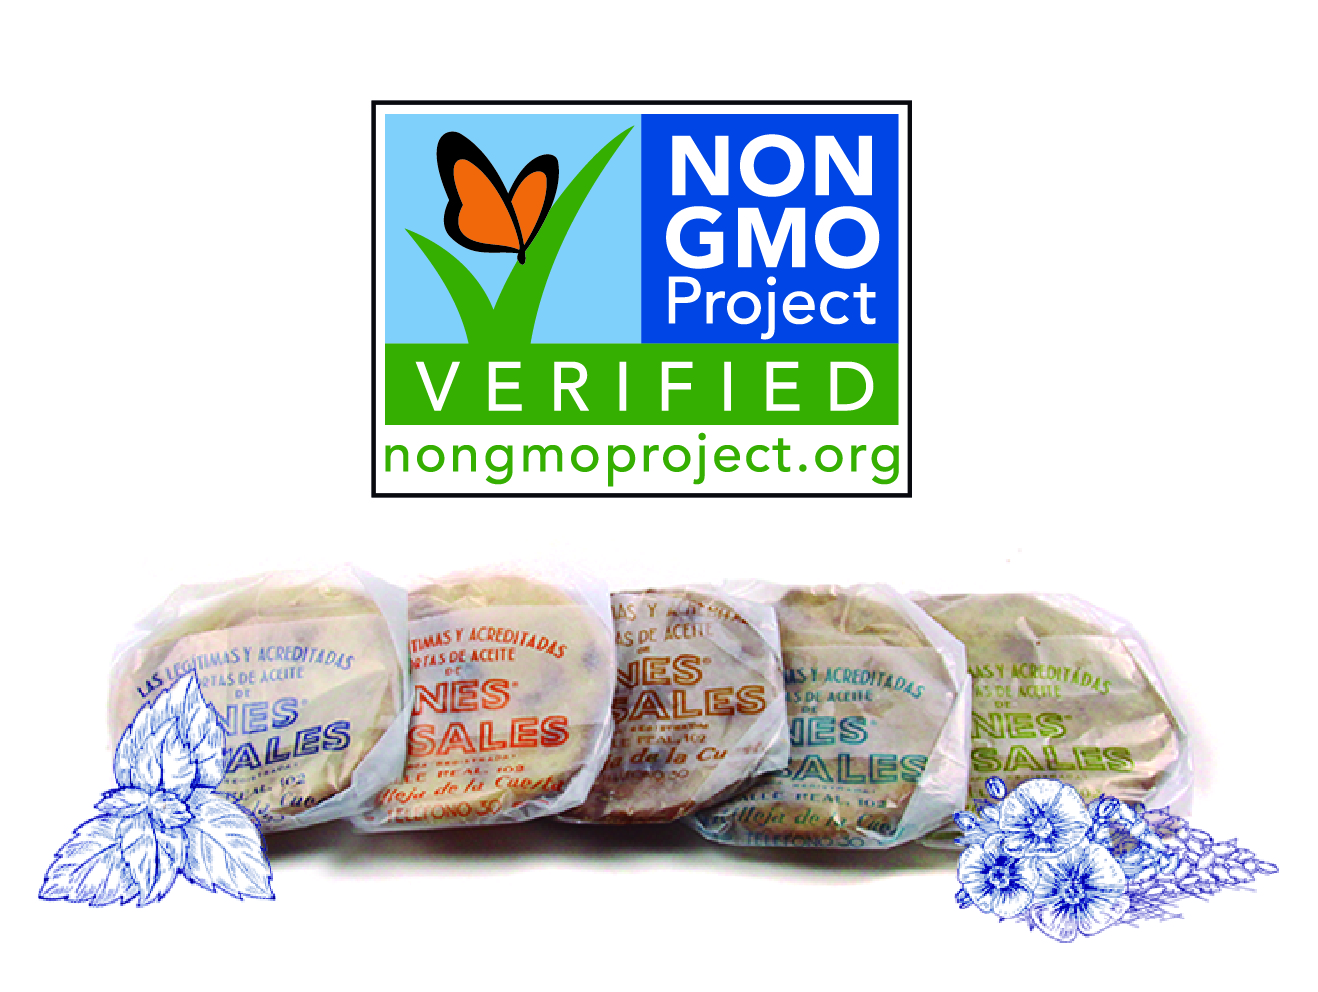 Ines Rosales Tortas are now Non-GMO certified